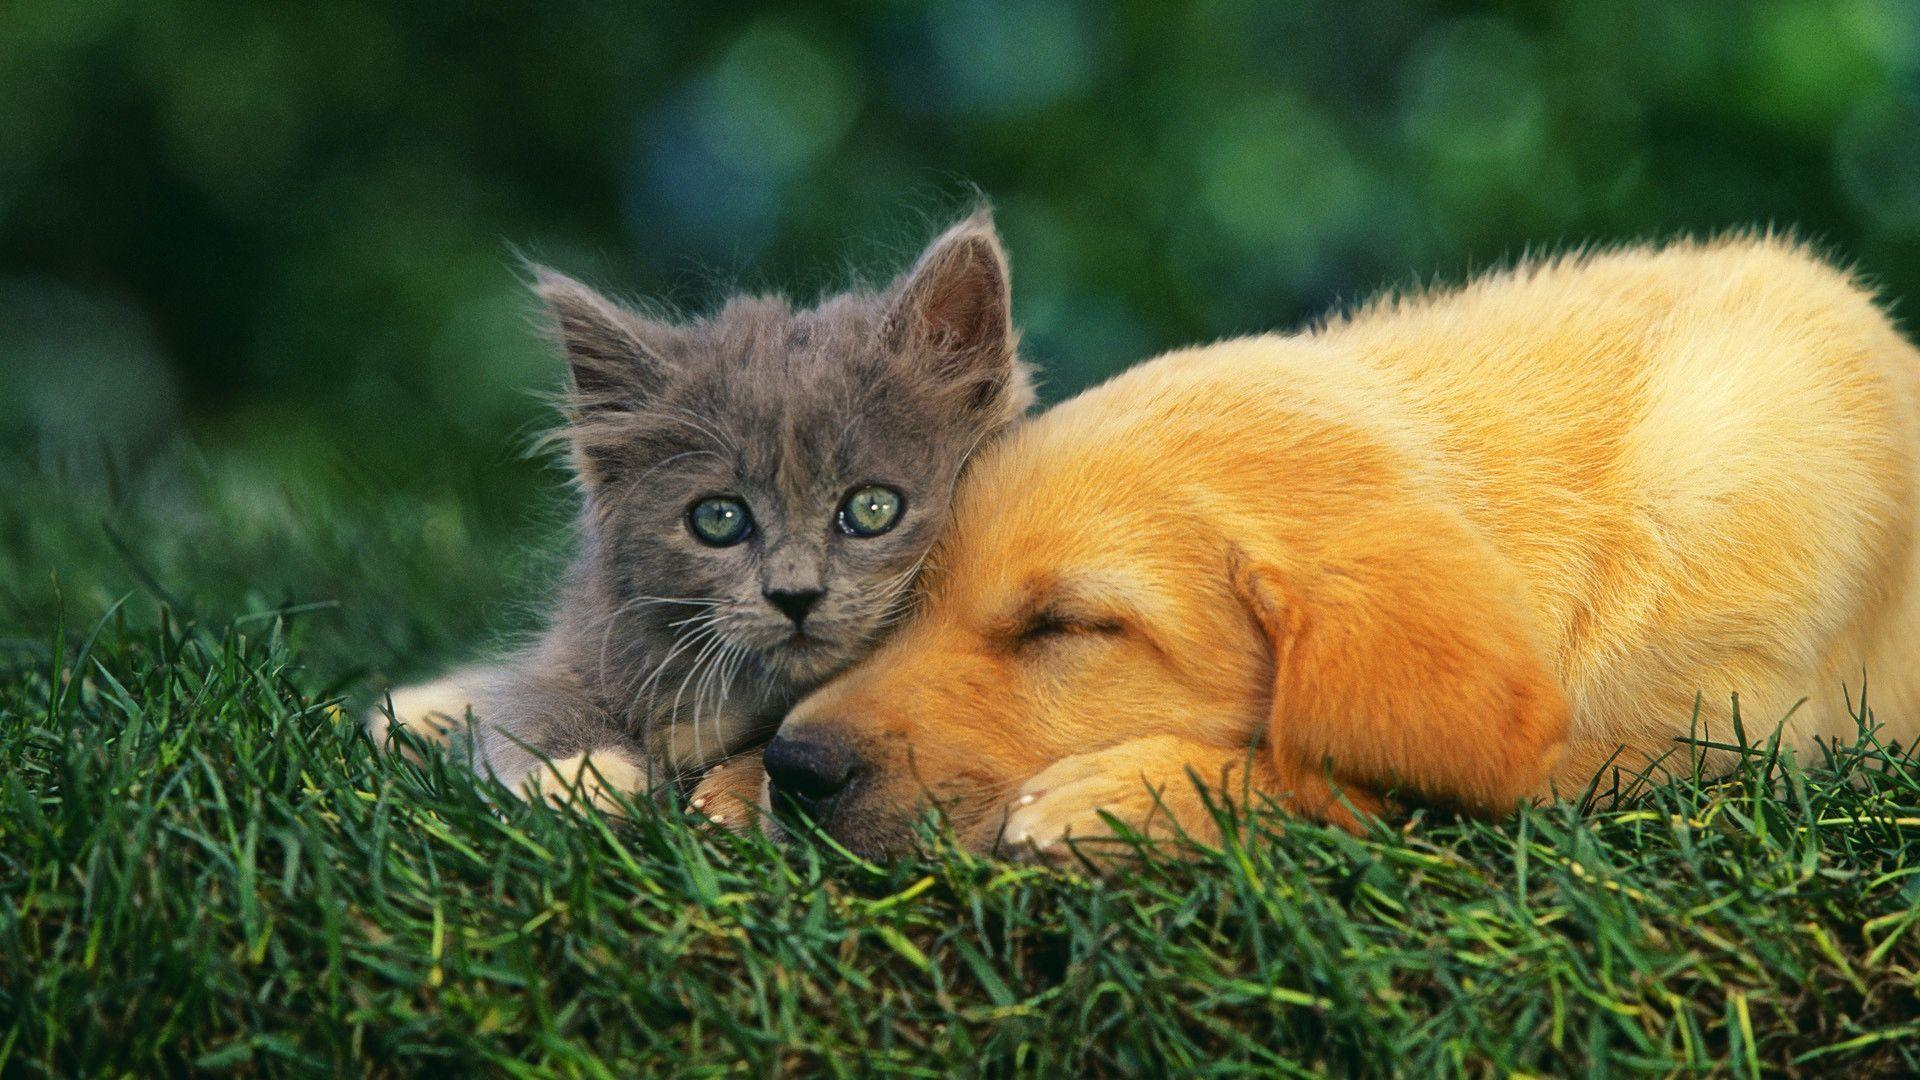 Dog And Cat Wallpapers - Wallpaper Cave